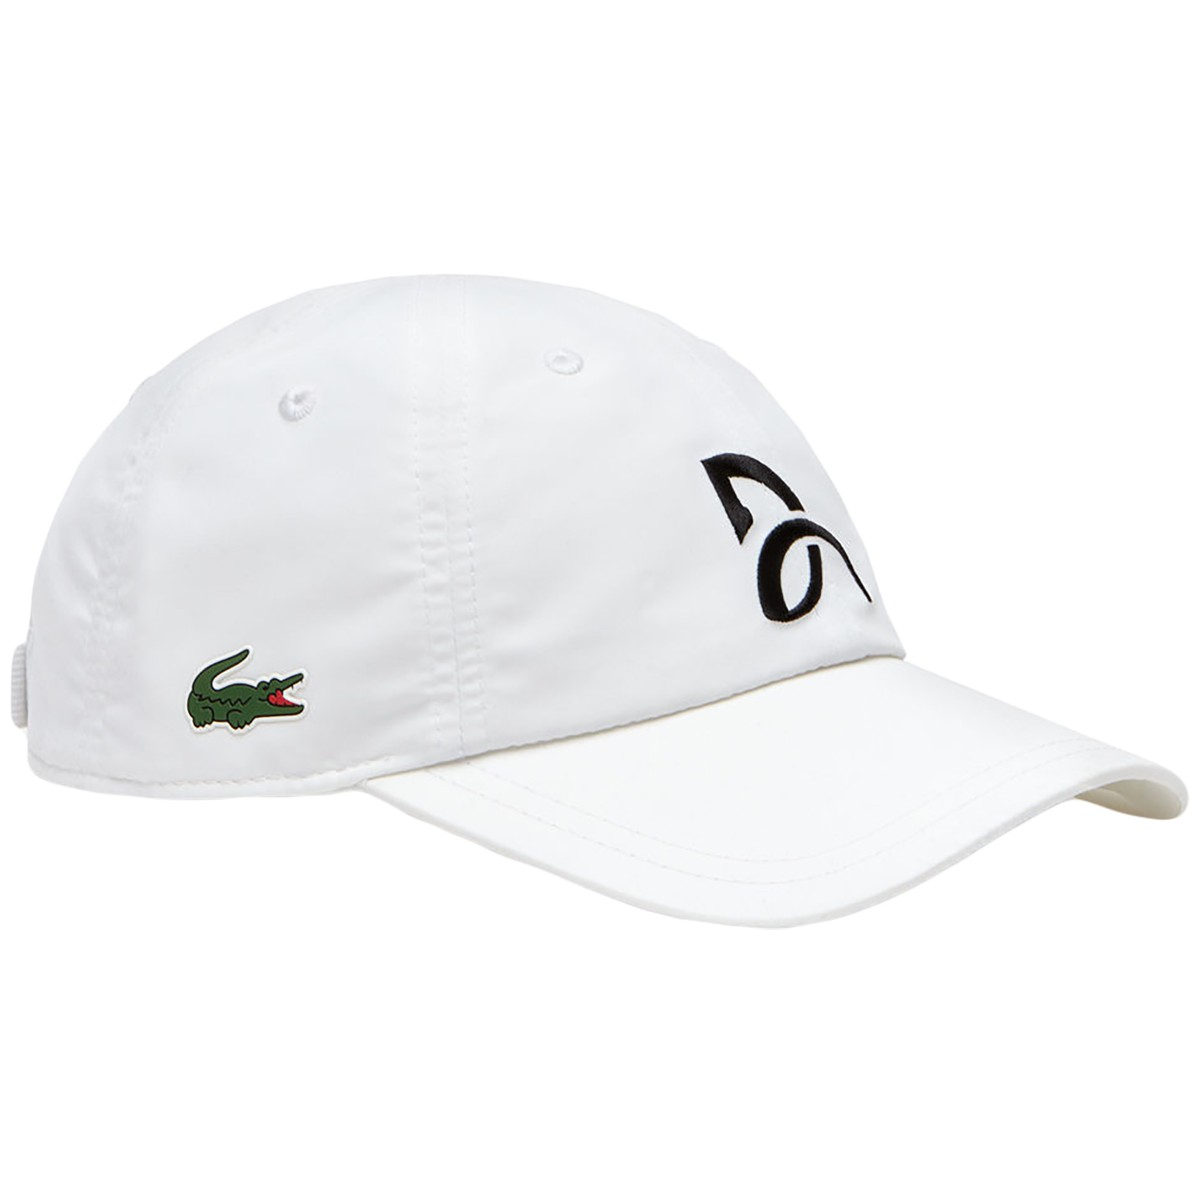 LACOSTE NOVAK DJOKOVIC COLLECTION CAP + cb9872bfe4a